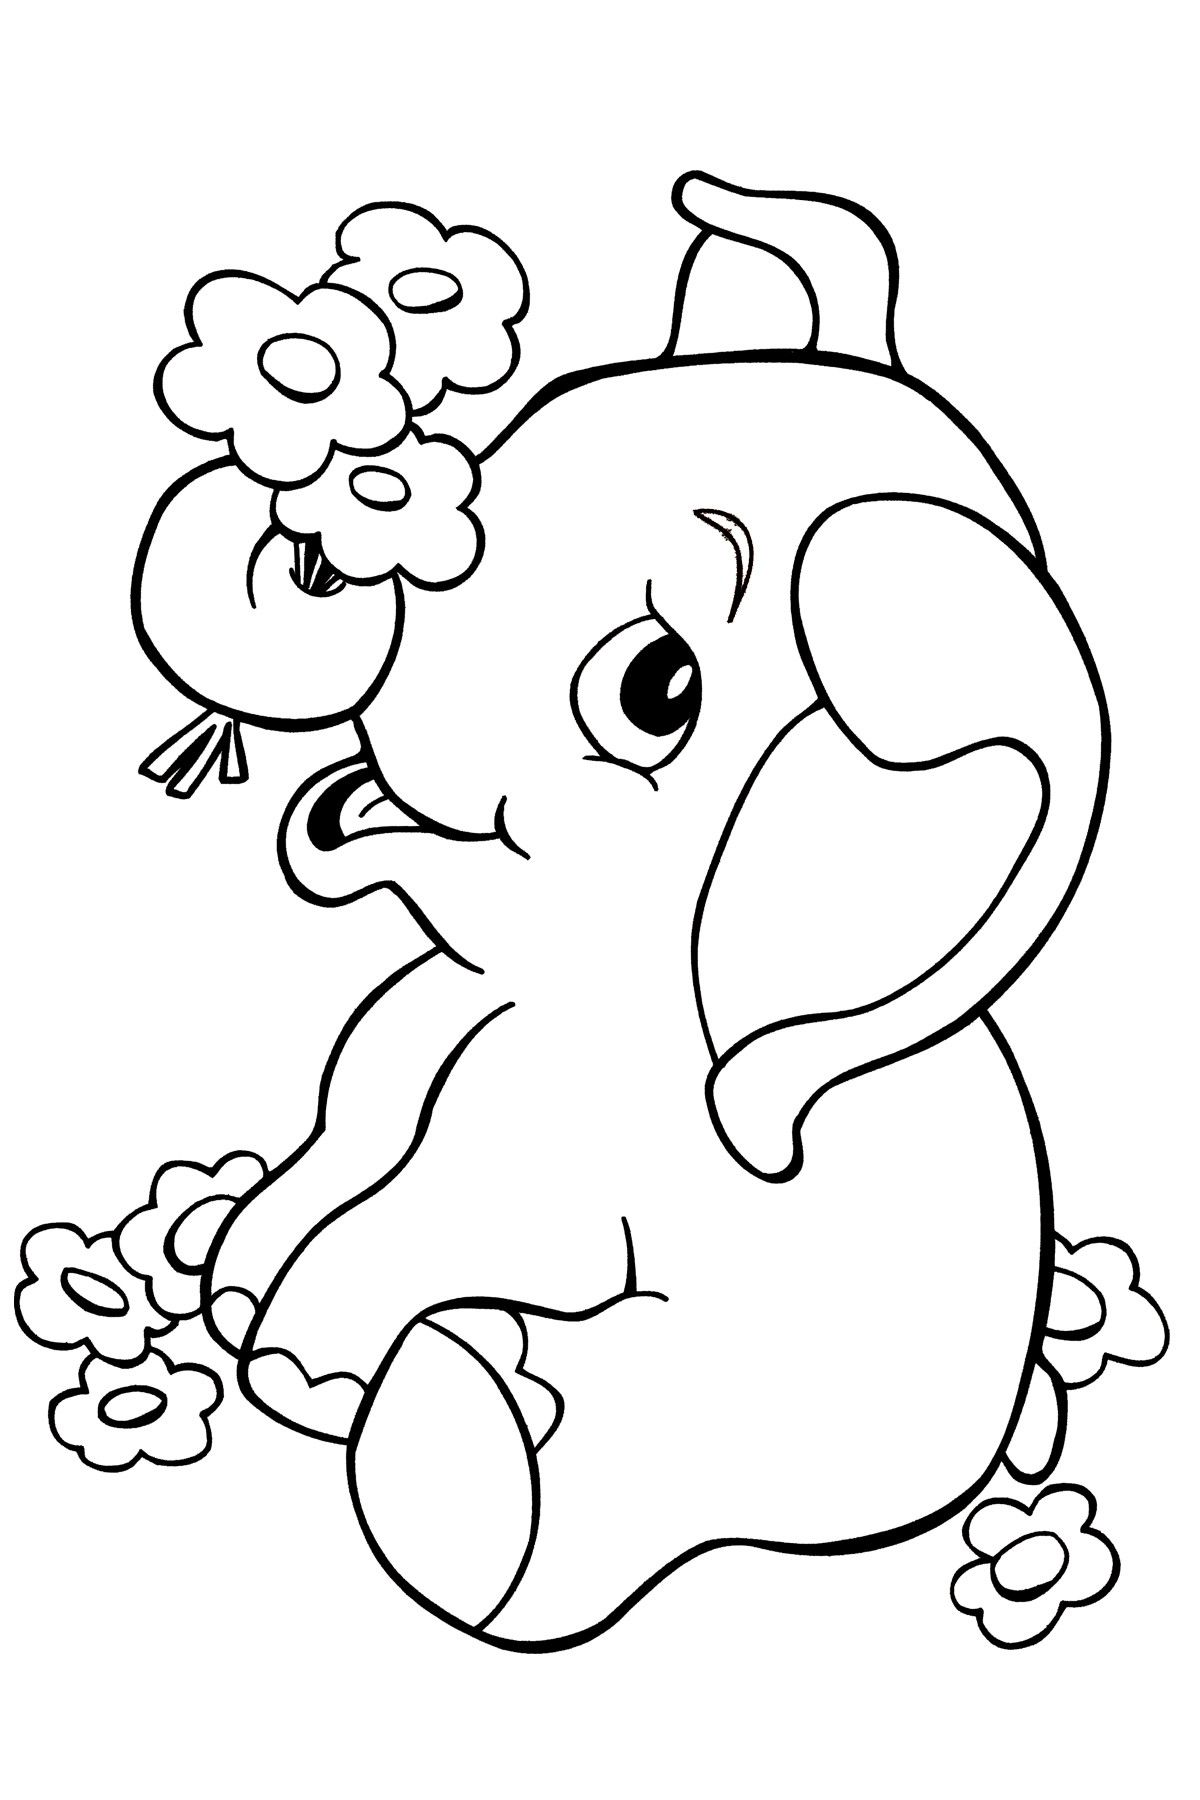 Top 20 Elephant Coloring Book For Kids Elephant Coloring Page